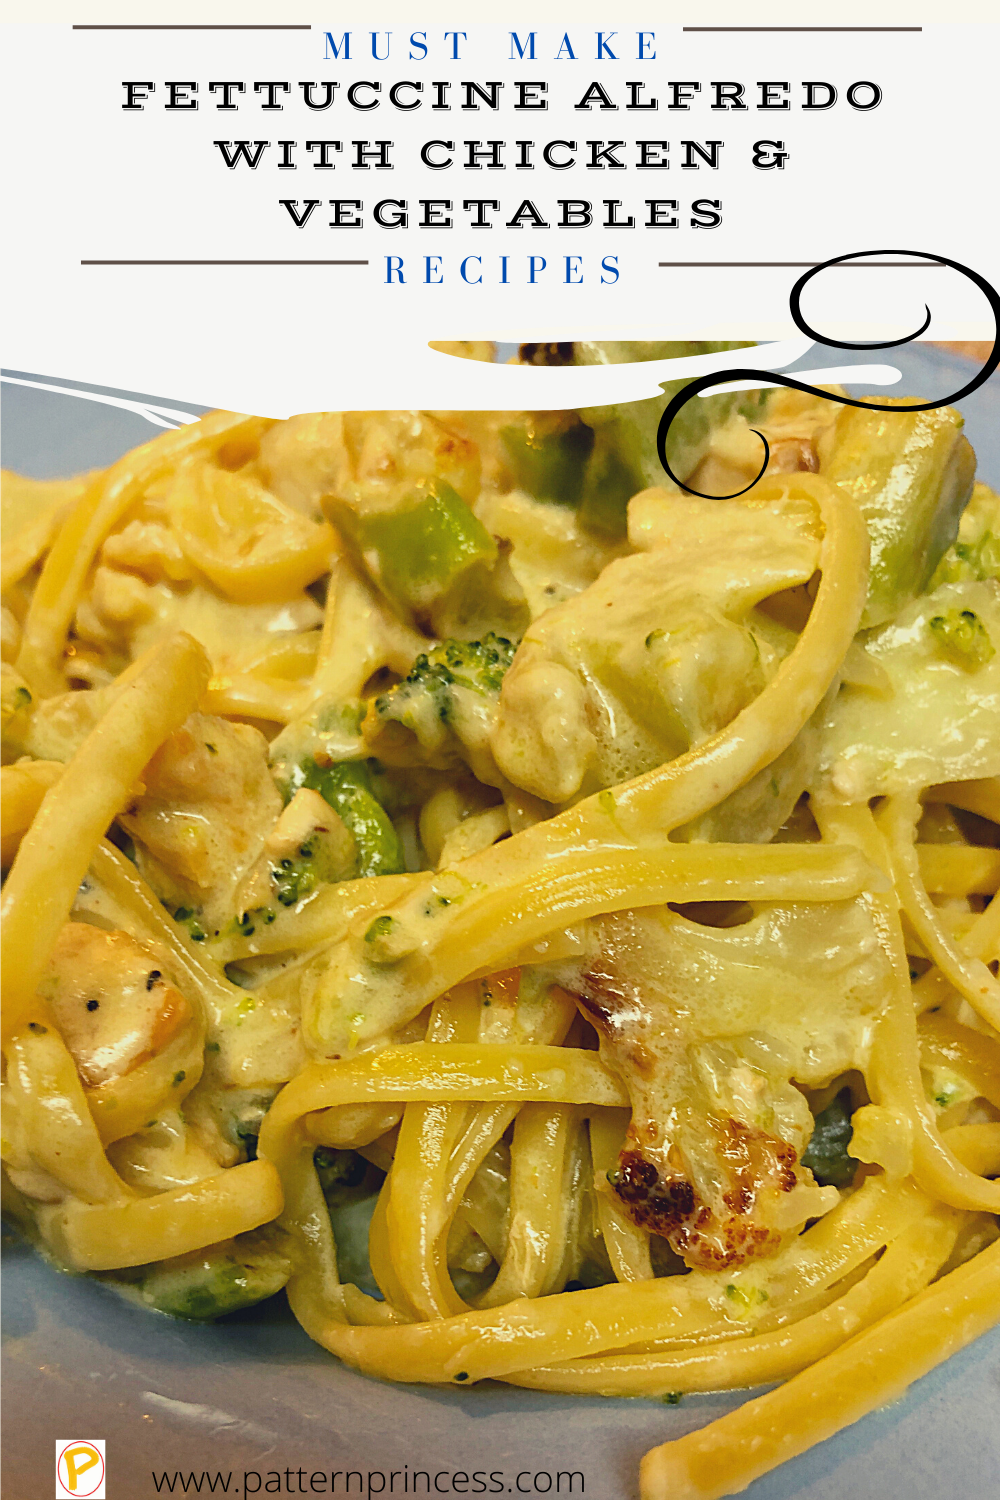 Fettuccine Alfredo with Chicken and Vegetables